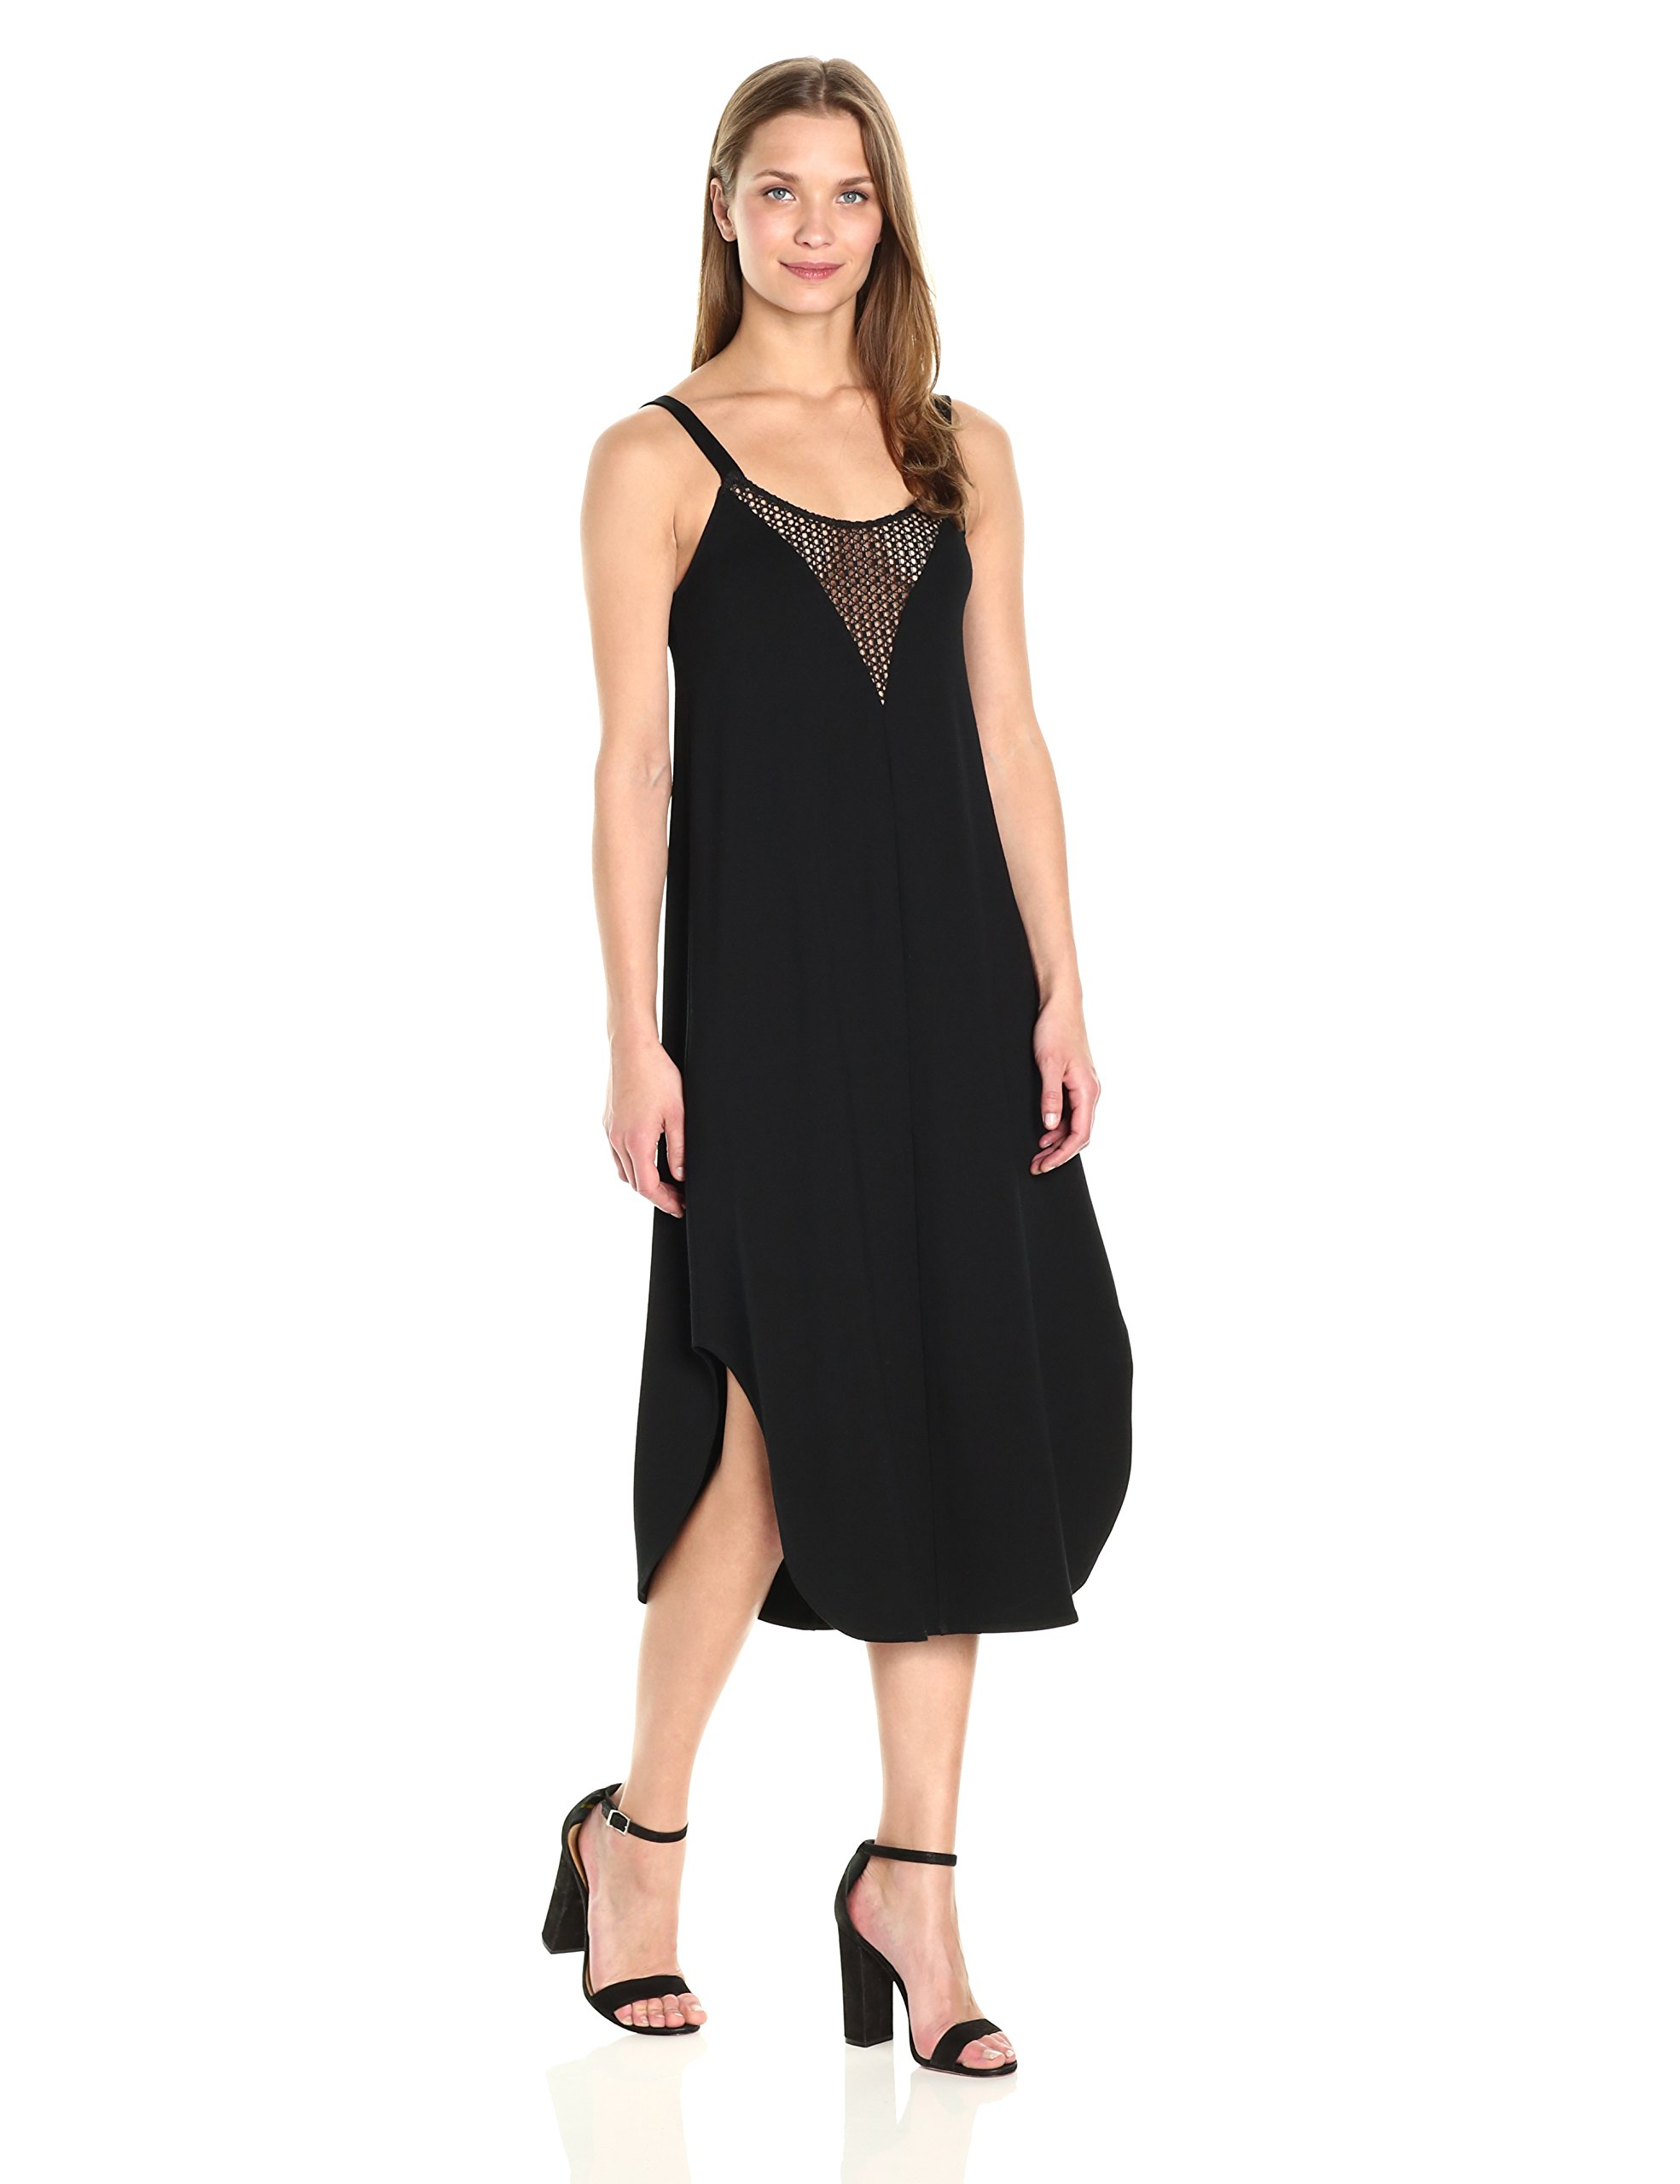 Only Hearts Women's So Fine Crochet Trim Slip Dress, Black, M